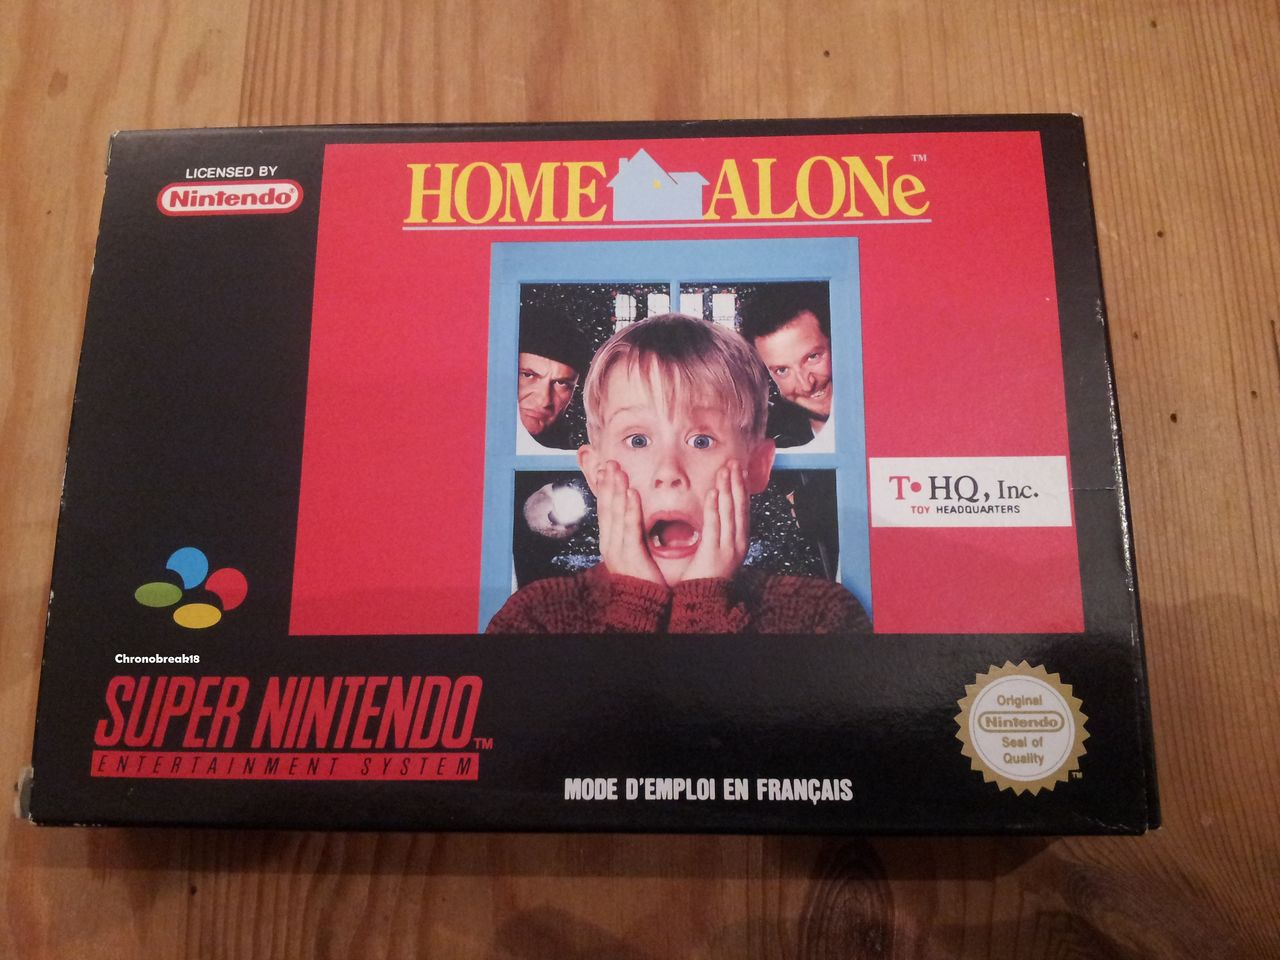 The Full Set SNES Power !!! En mode Menthol !!! DU MEGA LOURD !!! - Page 10 Home_Alone_modifi